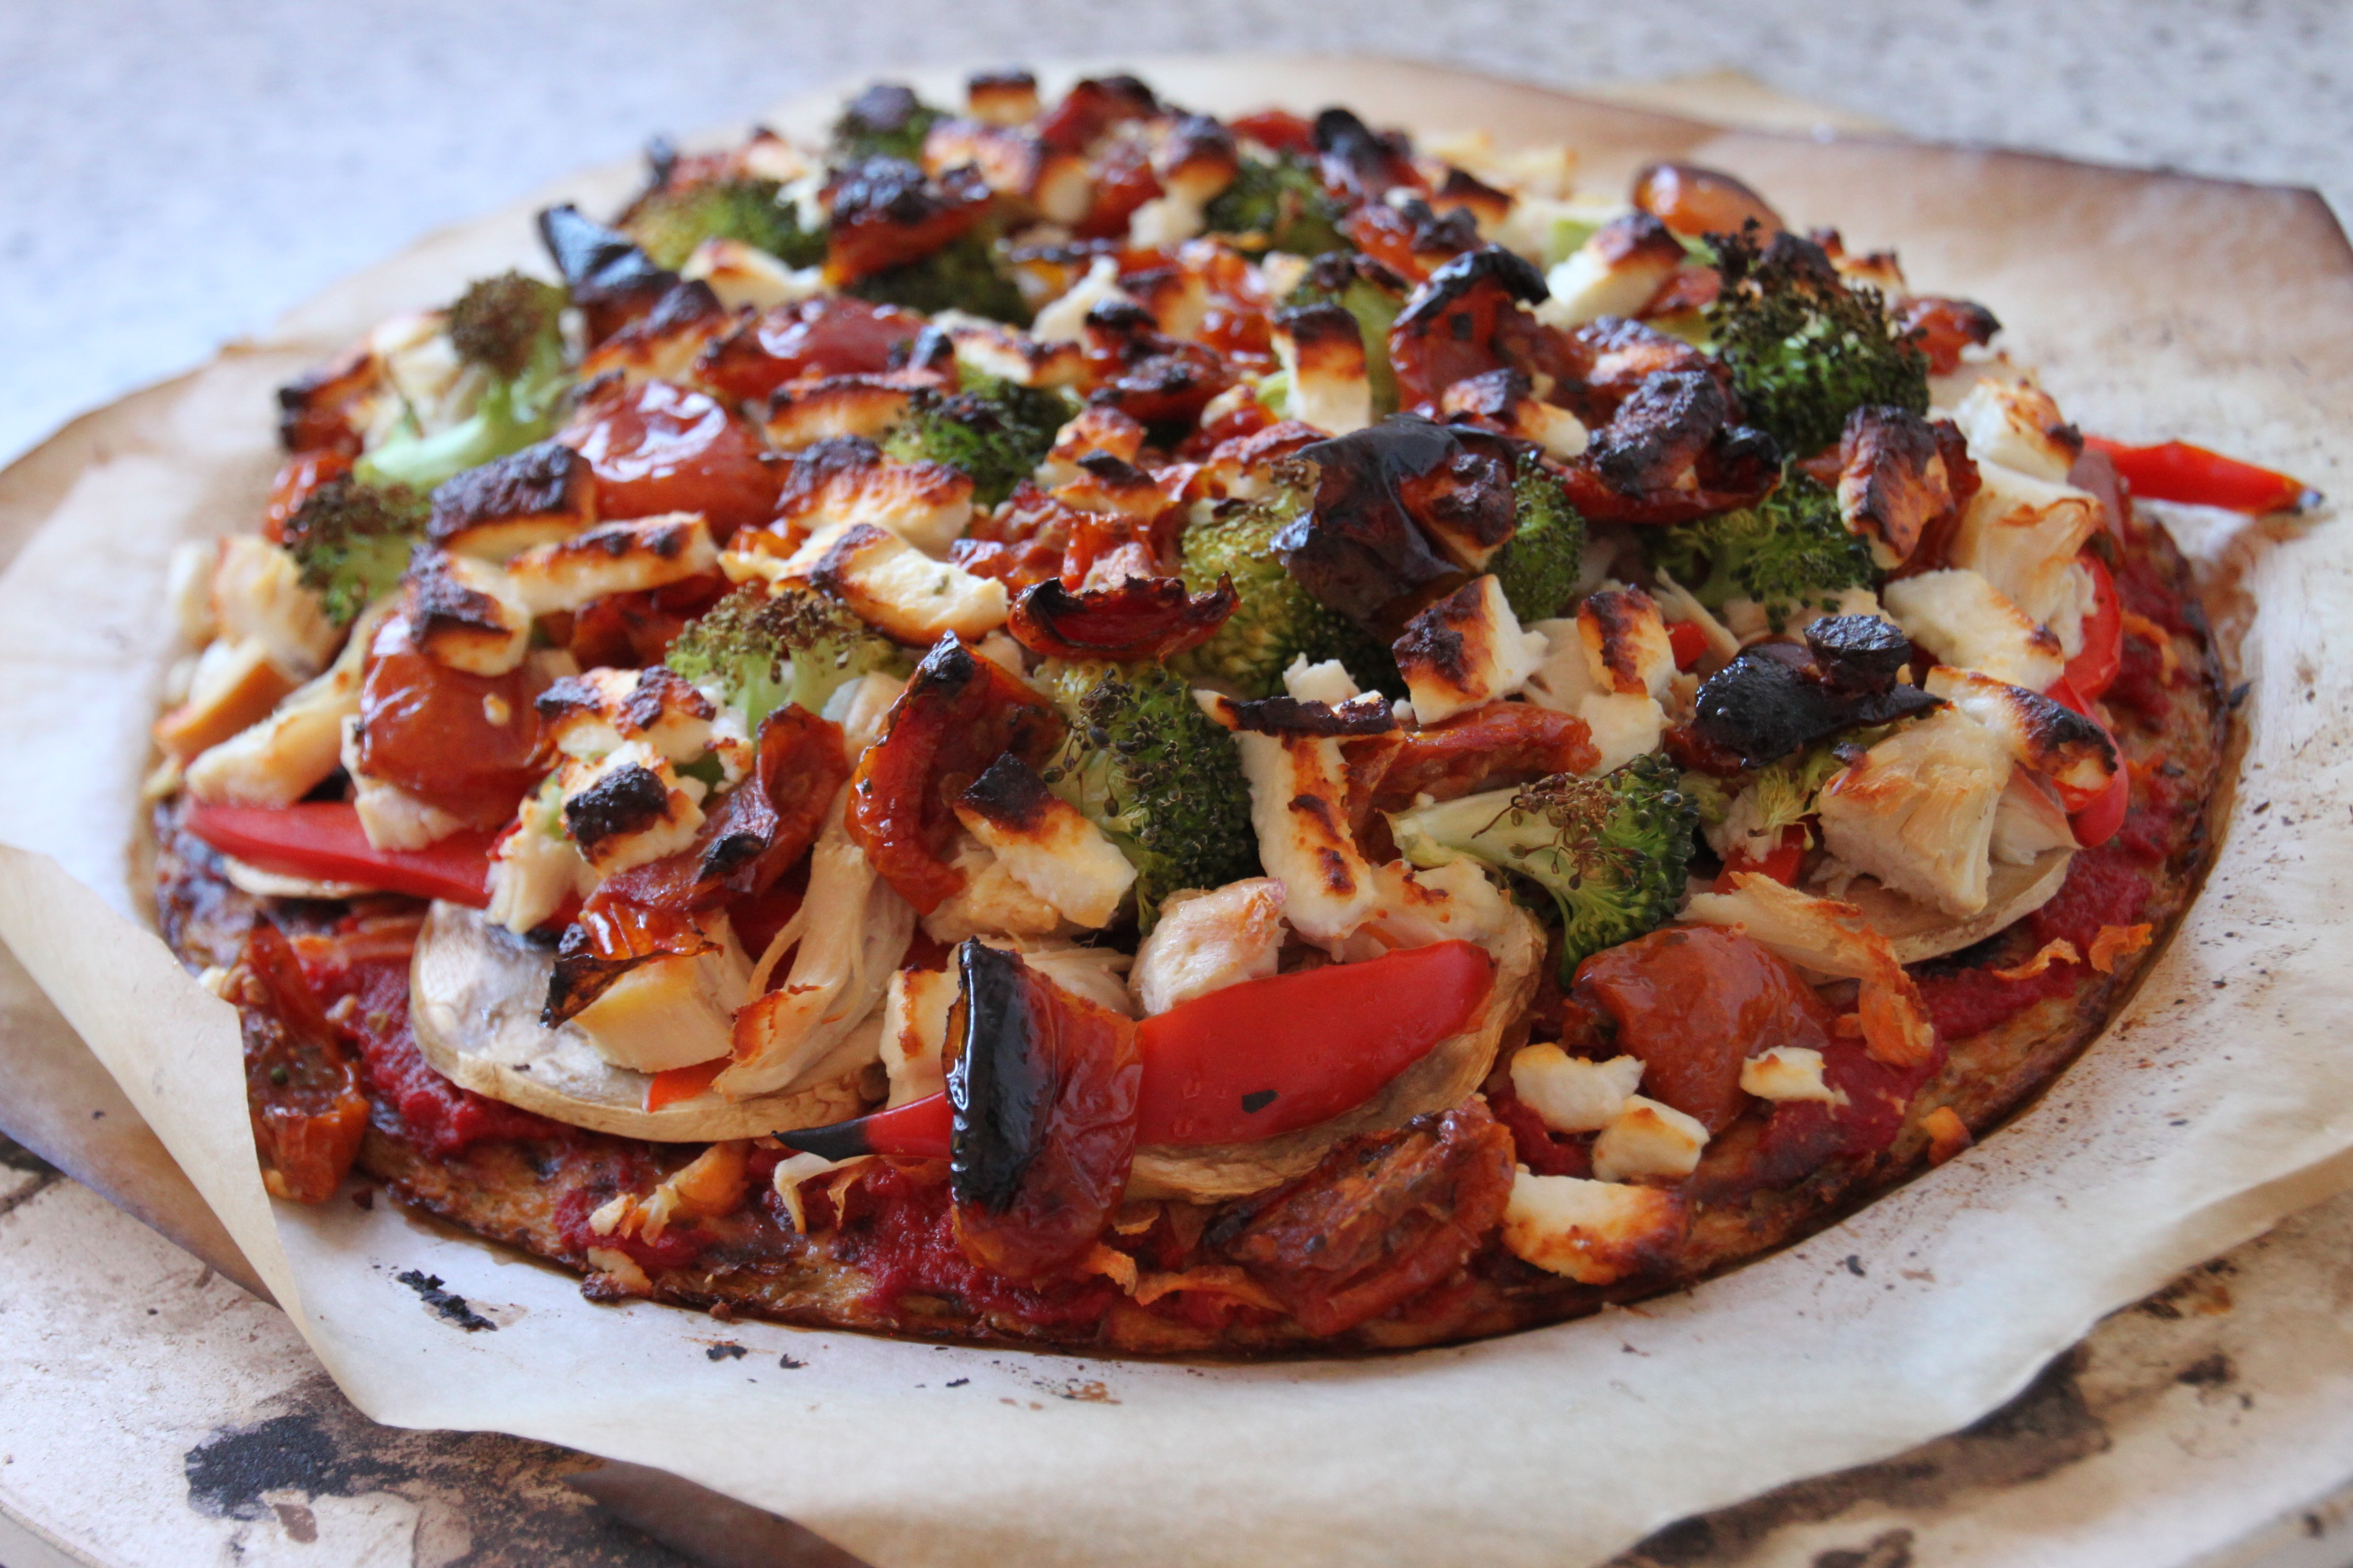 Cauliflower Based Pizza